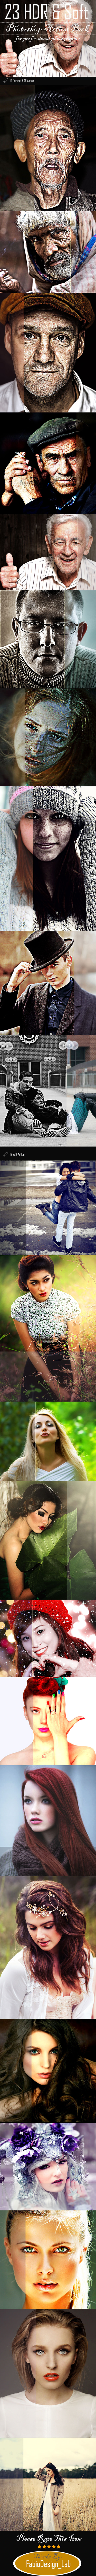 23 HDR & Soft Photoshop Actions Pack - Photo Effects Actions